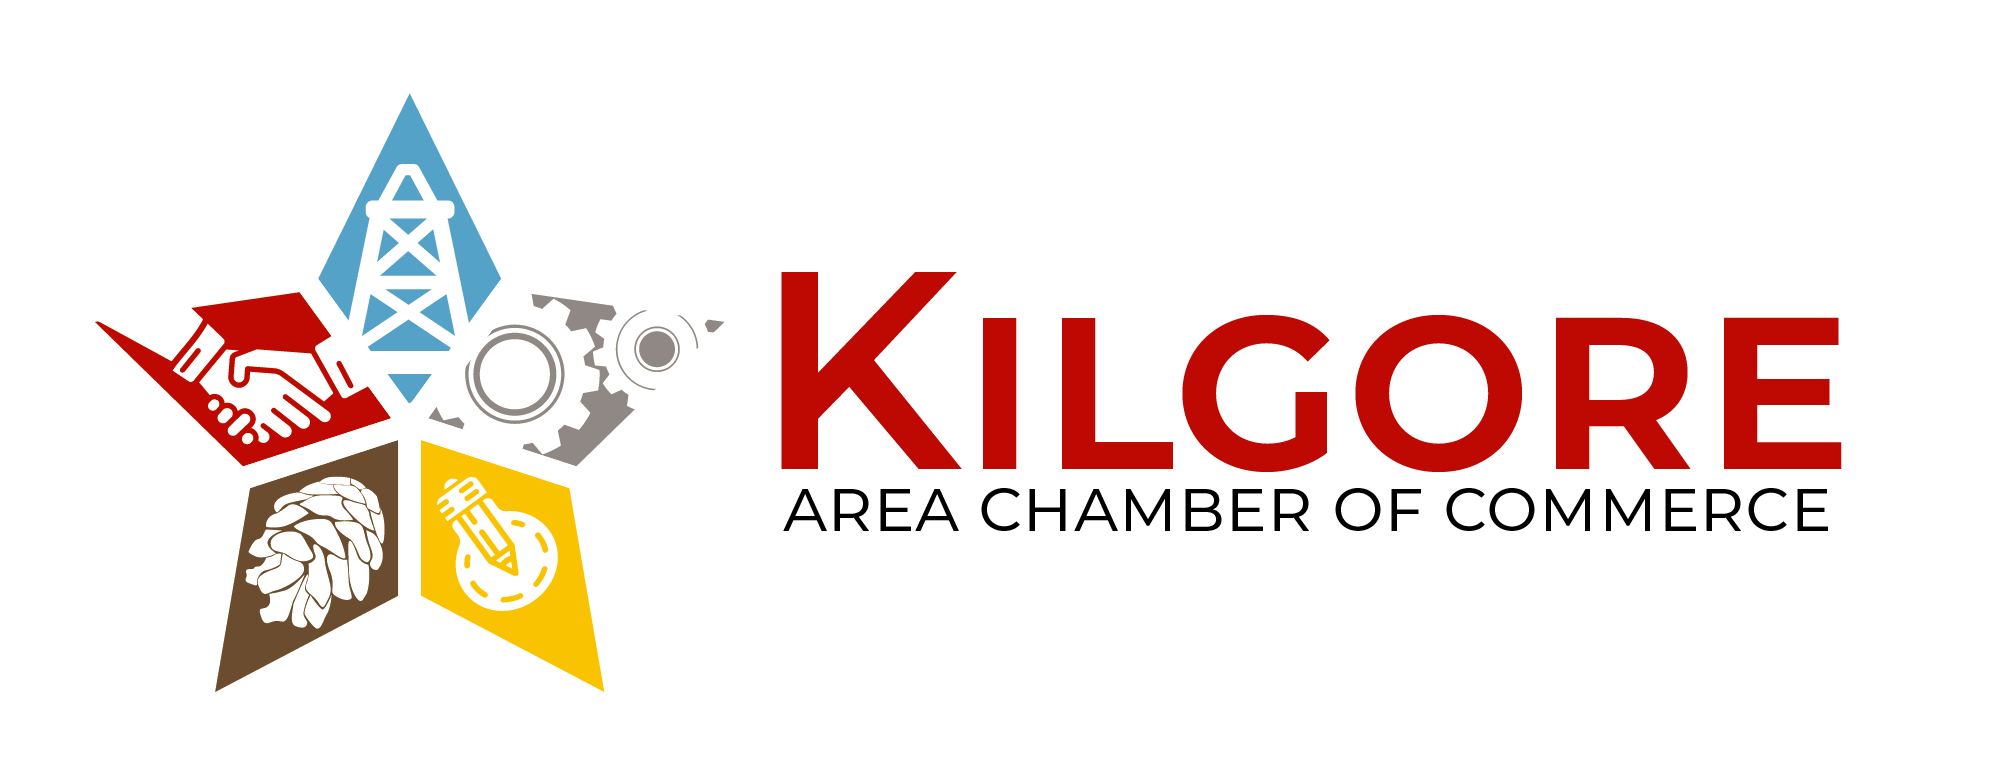 Kilgore Area Chamber of Commerce